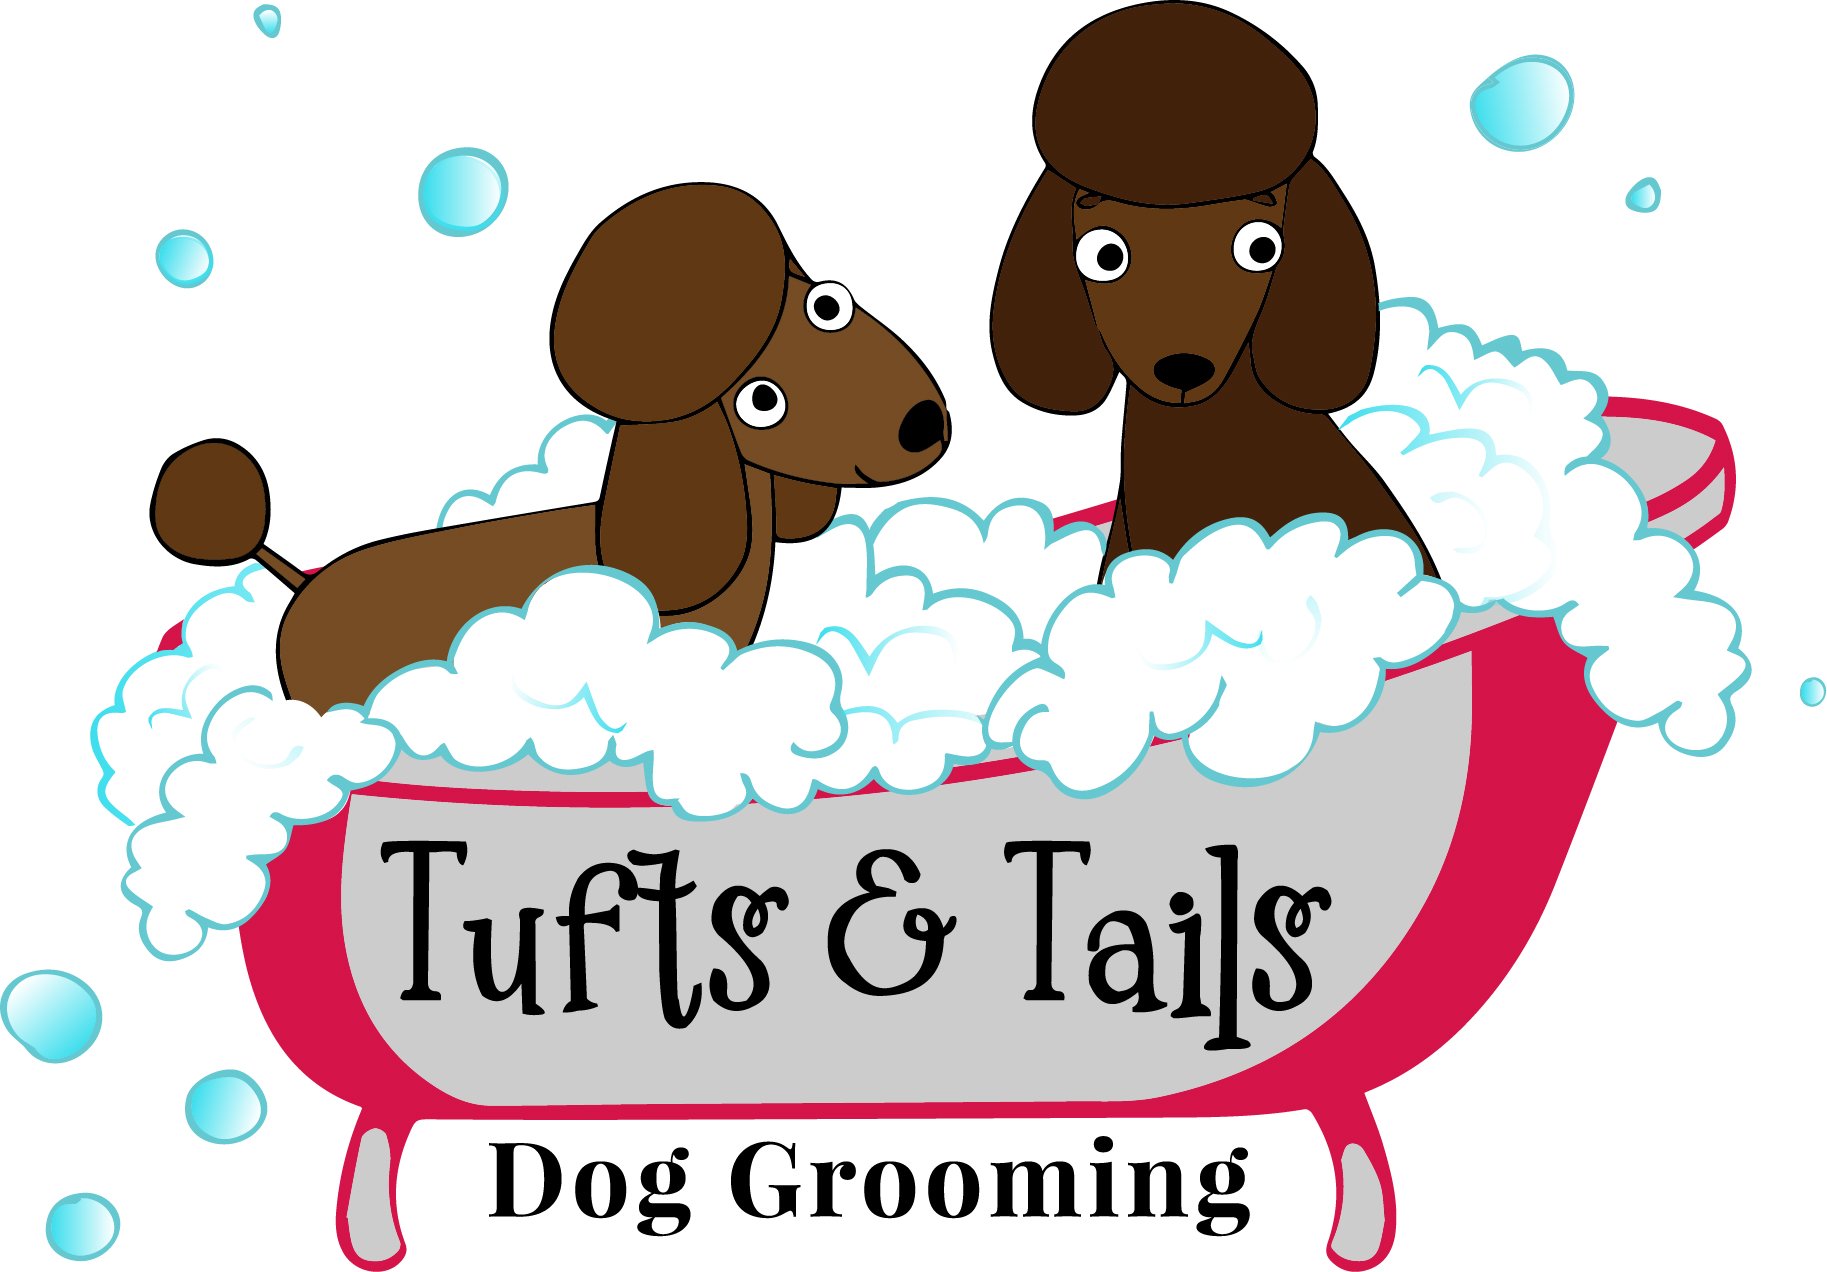 Tufts & Tails Dog Grooming